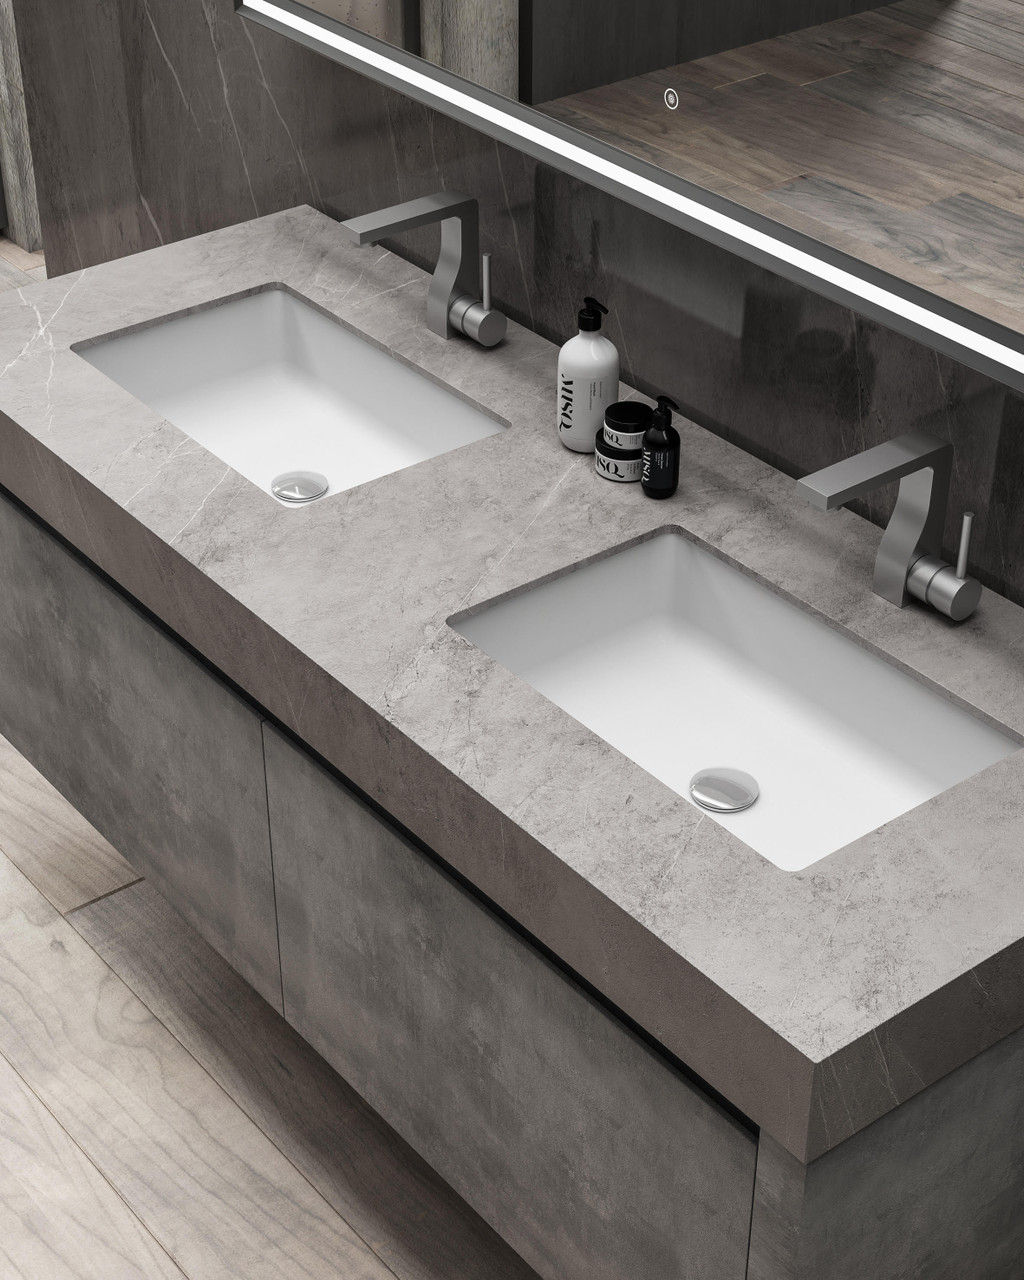 Capri Modern Wall Mounted Bathroom Vanity 63 York Taps